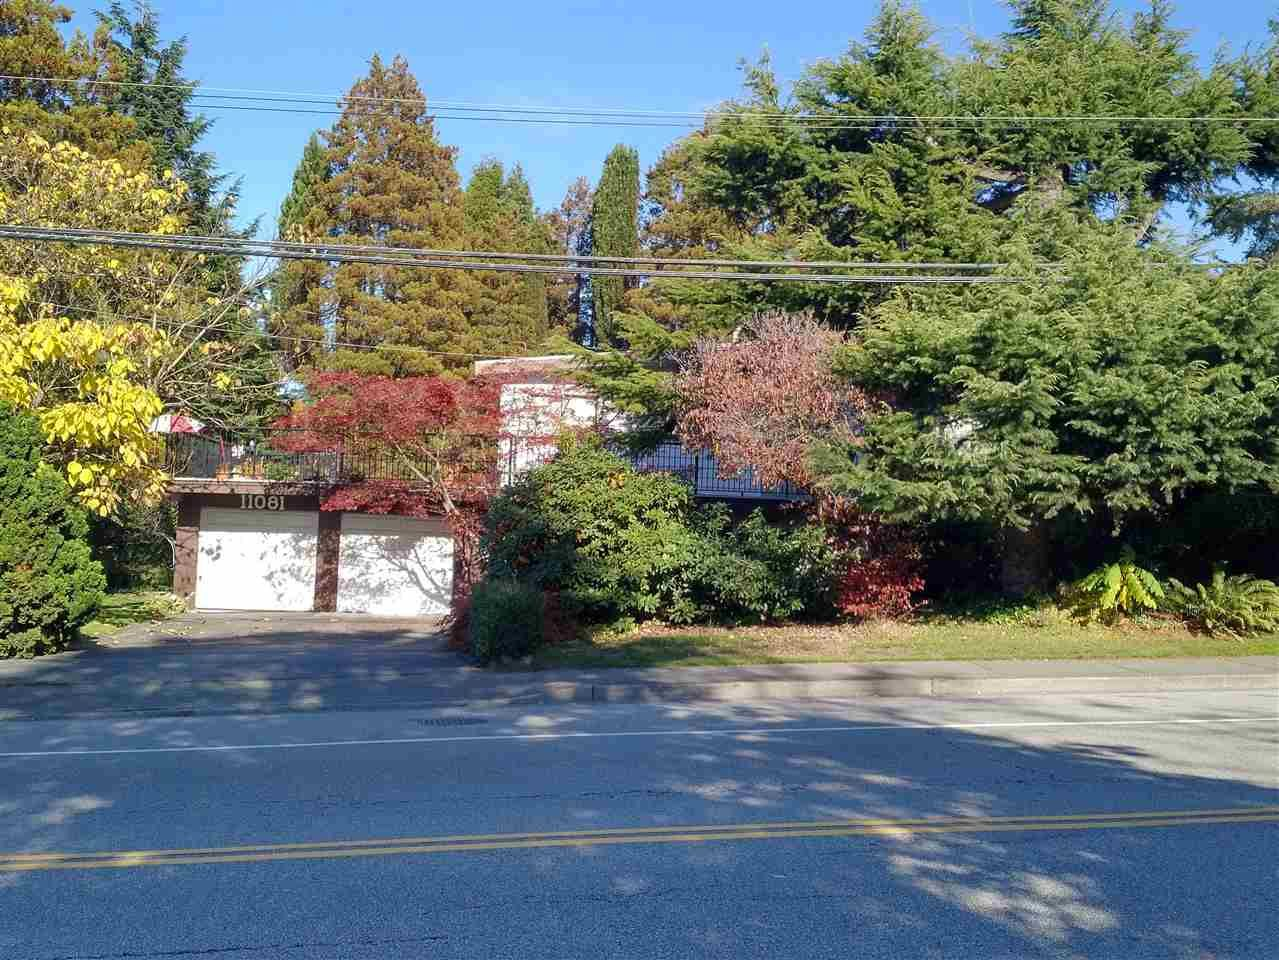 Main Photo: 11081 72 Avenue in Delta: Nordel House for sale (N. Delta)  : MLS®# R2323057